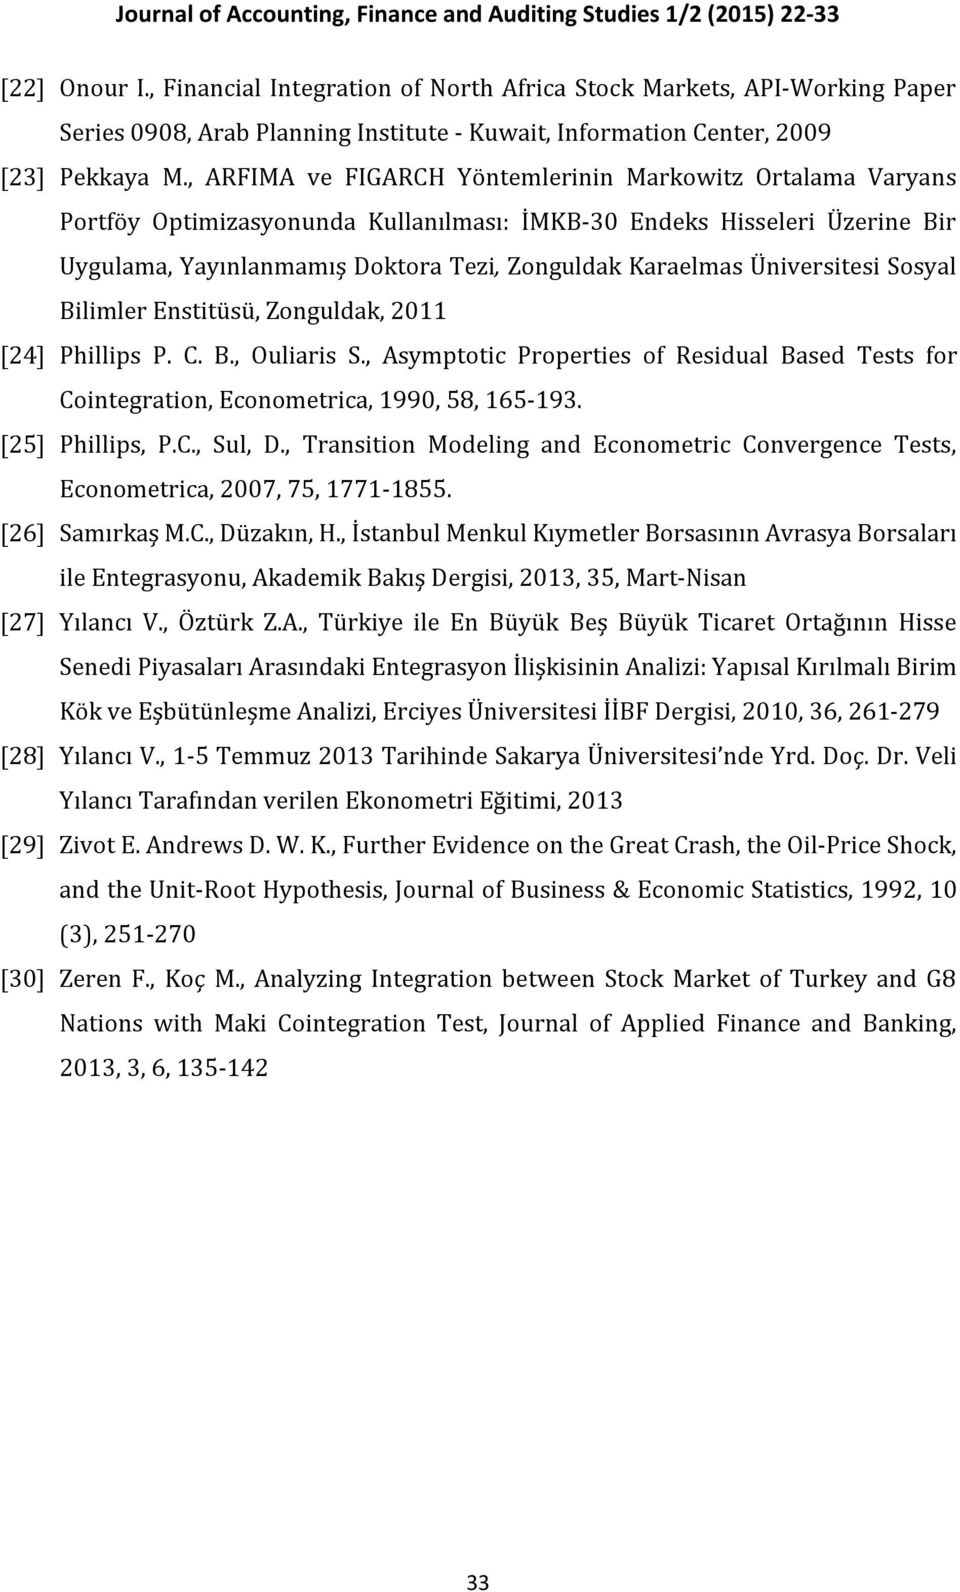 Üniversitesi Sosyal Bilimler Enstitüsü, Zonguldak, 2011 [24] Phillips P. C. B., Ouliaris S., Asymptotic Properties of Residual Based Tests for Cointegration, Econometrica, 1990, 58, 165-193.